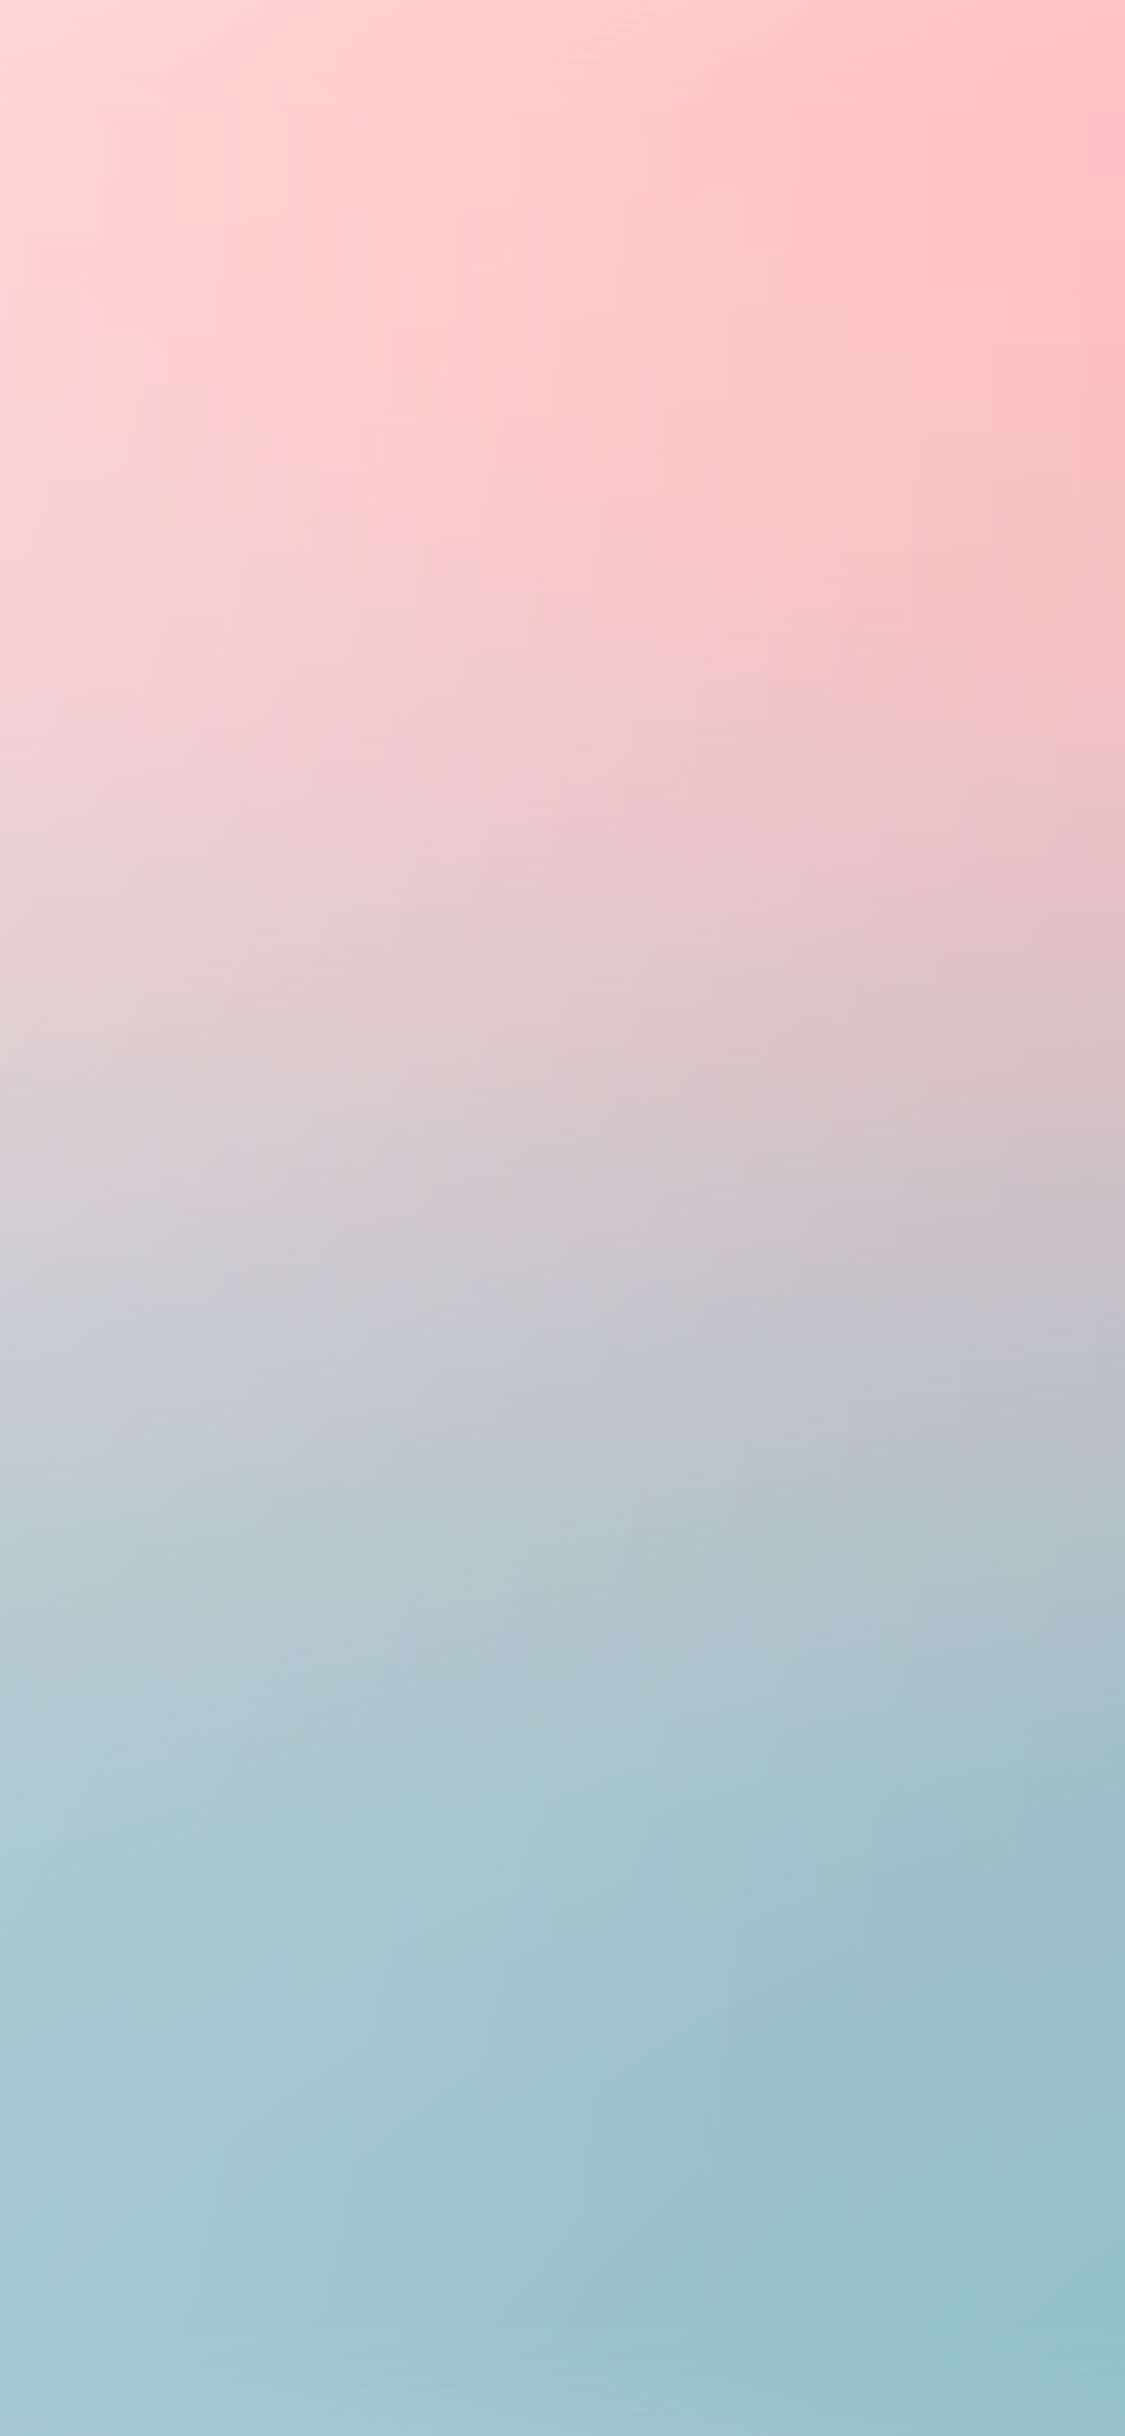 Free Fall Wallpaper For Iphone 6 Pink And Turquoise Wallpaper 64 Images